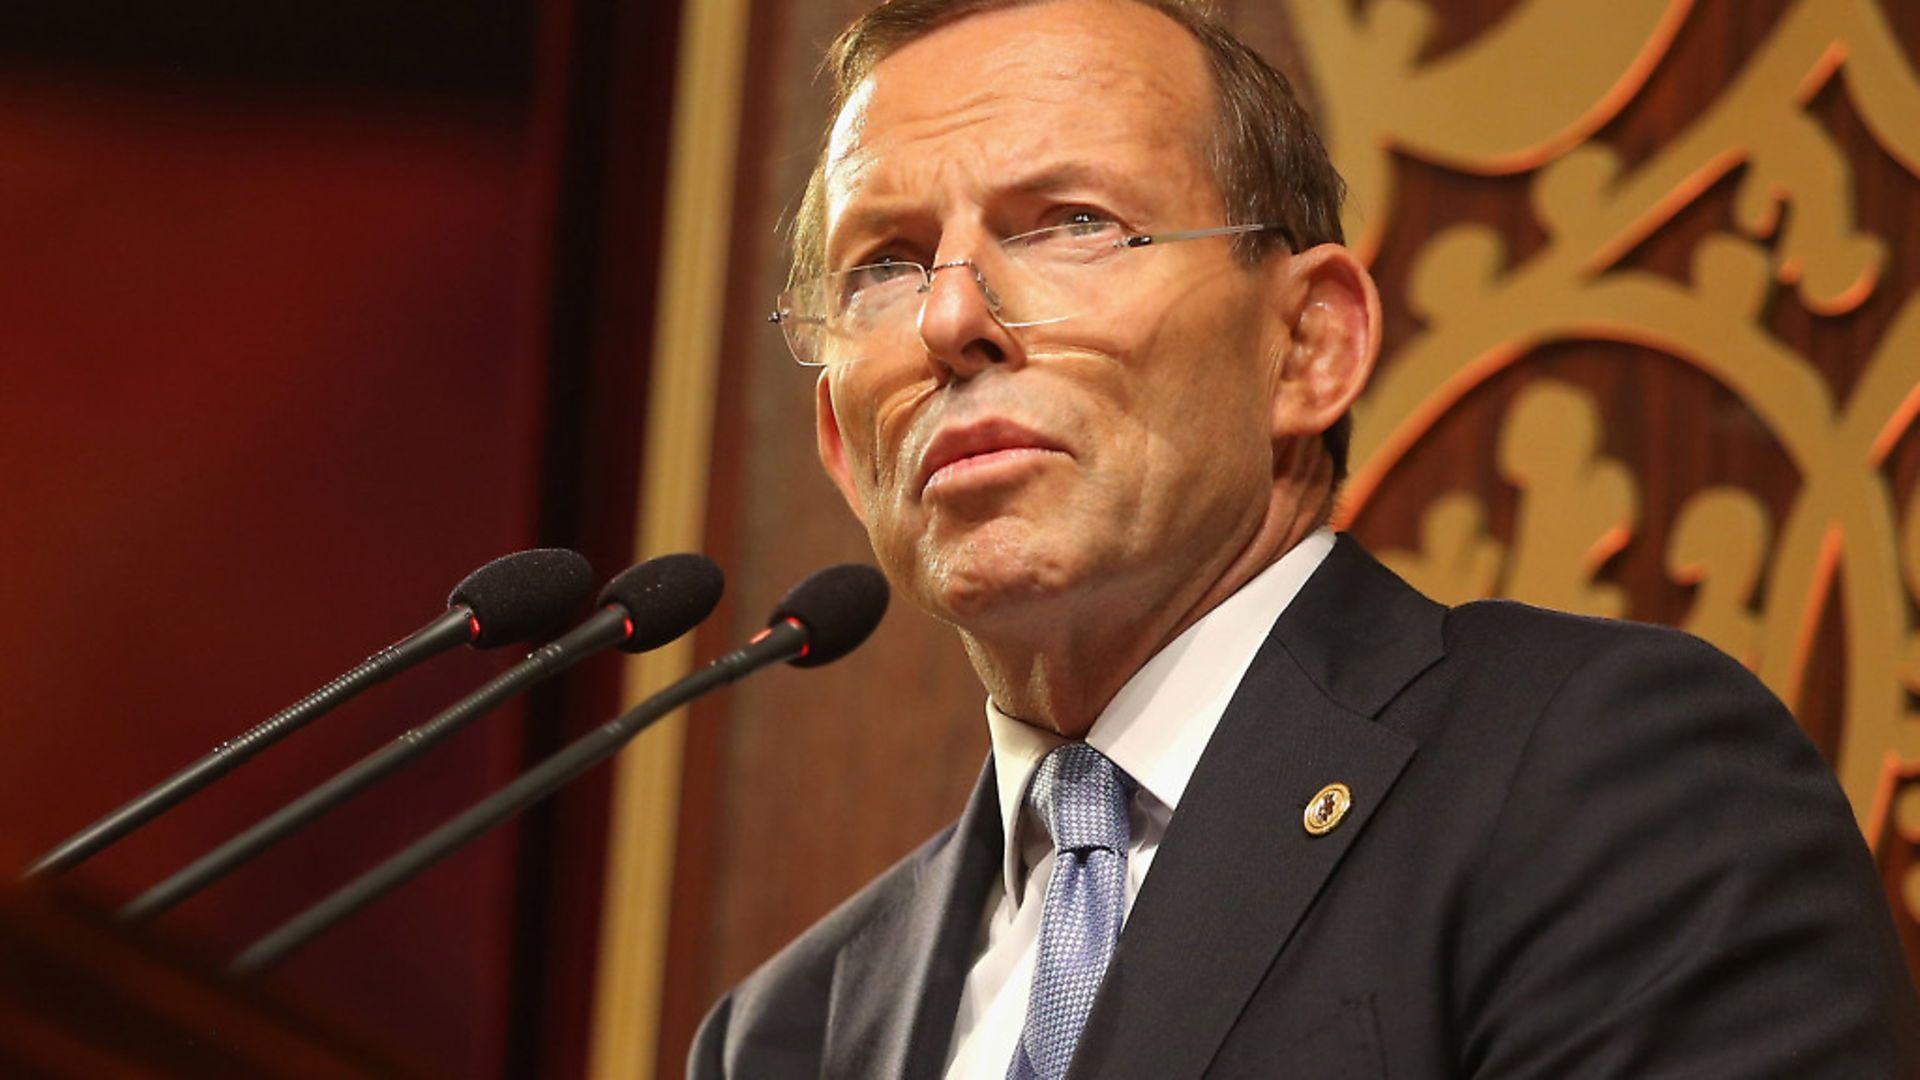 Former Australian prime minister Tony Abbott speaking at the opening ceremony at the Commonwealth Heads of Government Meeting (CHOGM), at the Nelum Pokuna Theatre in Colombo, Sri Lanka; Chris Jackson - Credit: PA